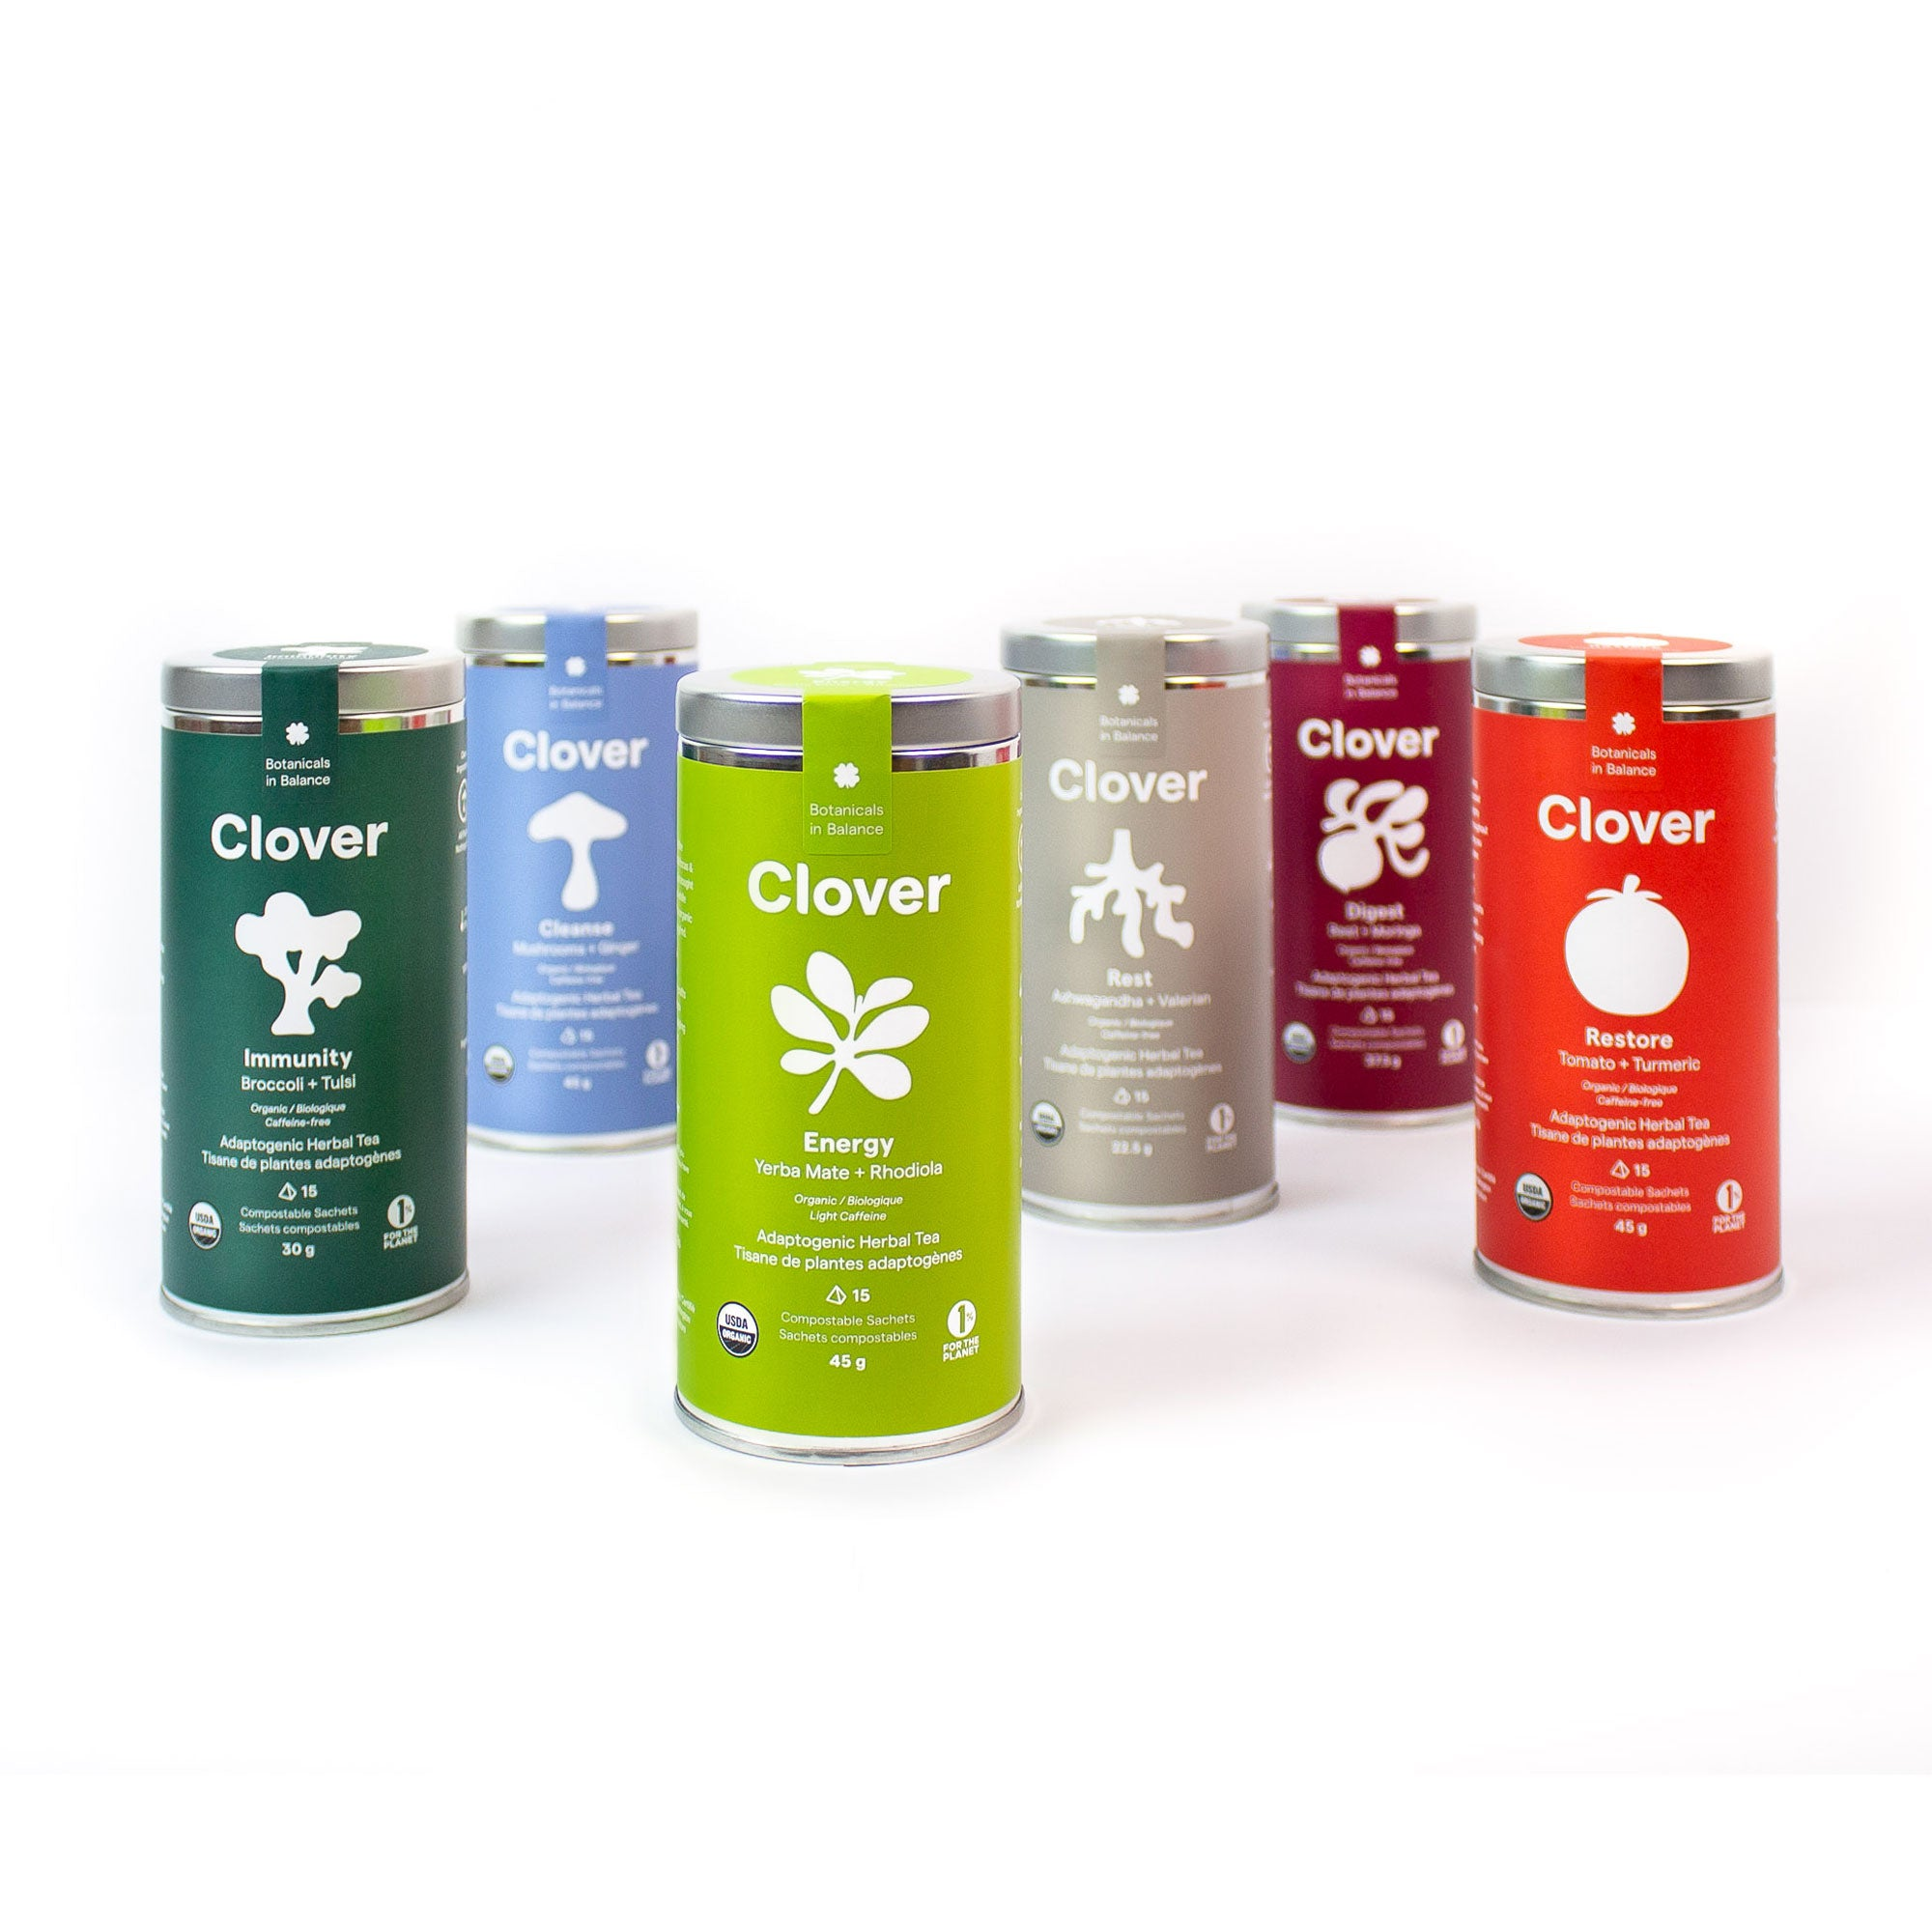 Clover All 6 Blends adaptogenic herbal tea steel canisters, adaptogens for stress relief